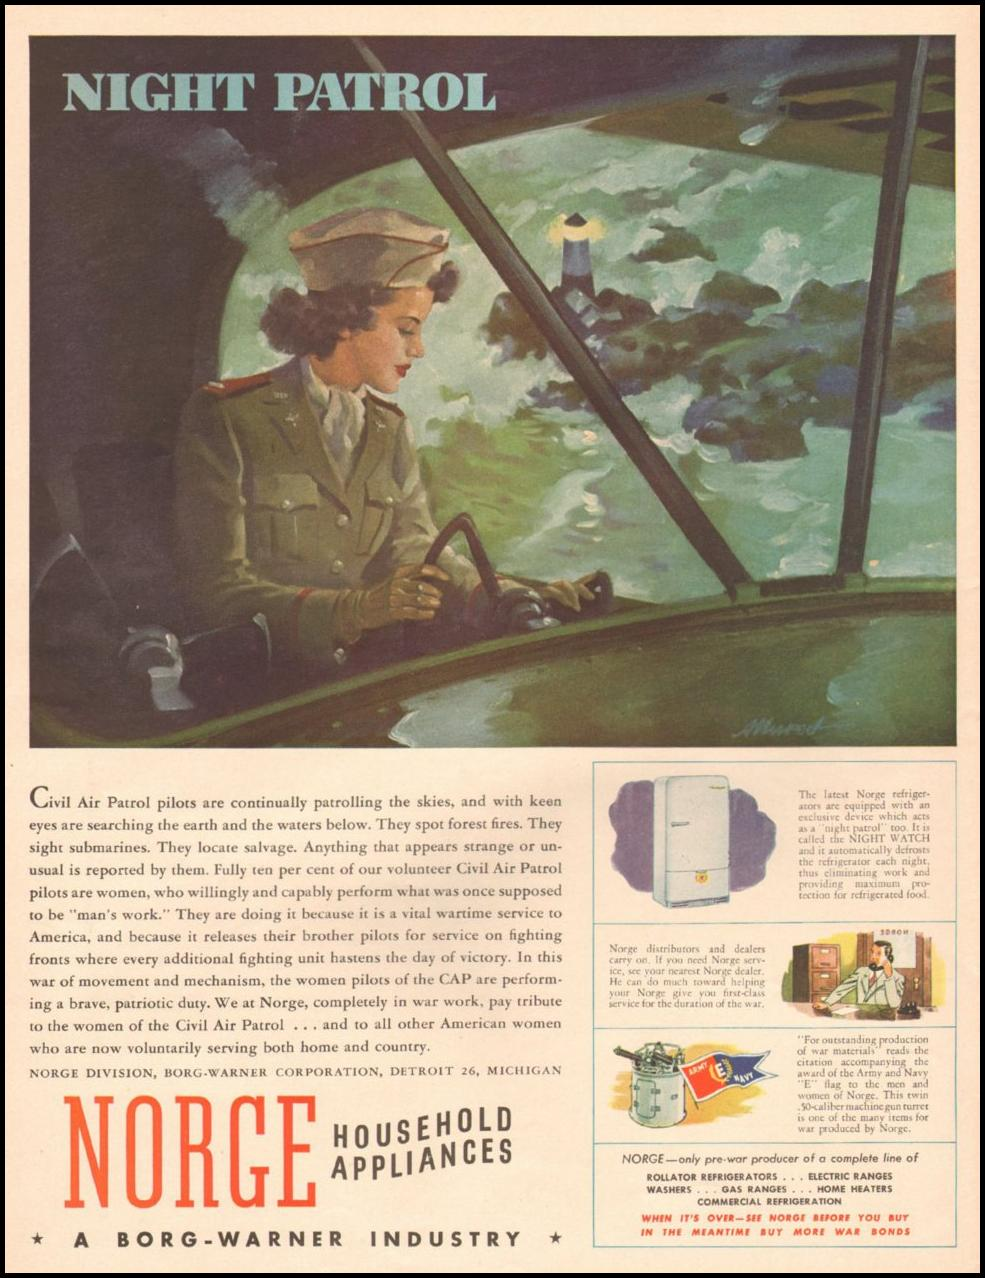 NORGE HOUSEHOLD APPLIANCES LIFE 10/25/1943